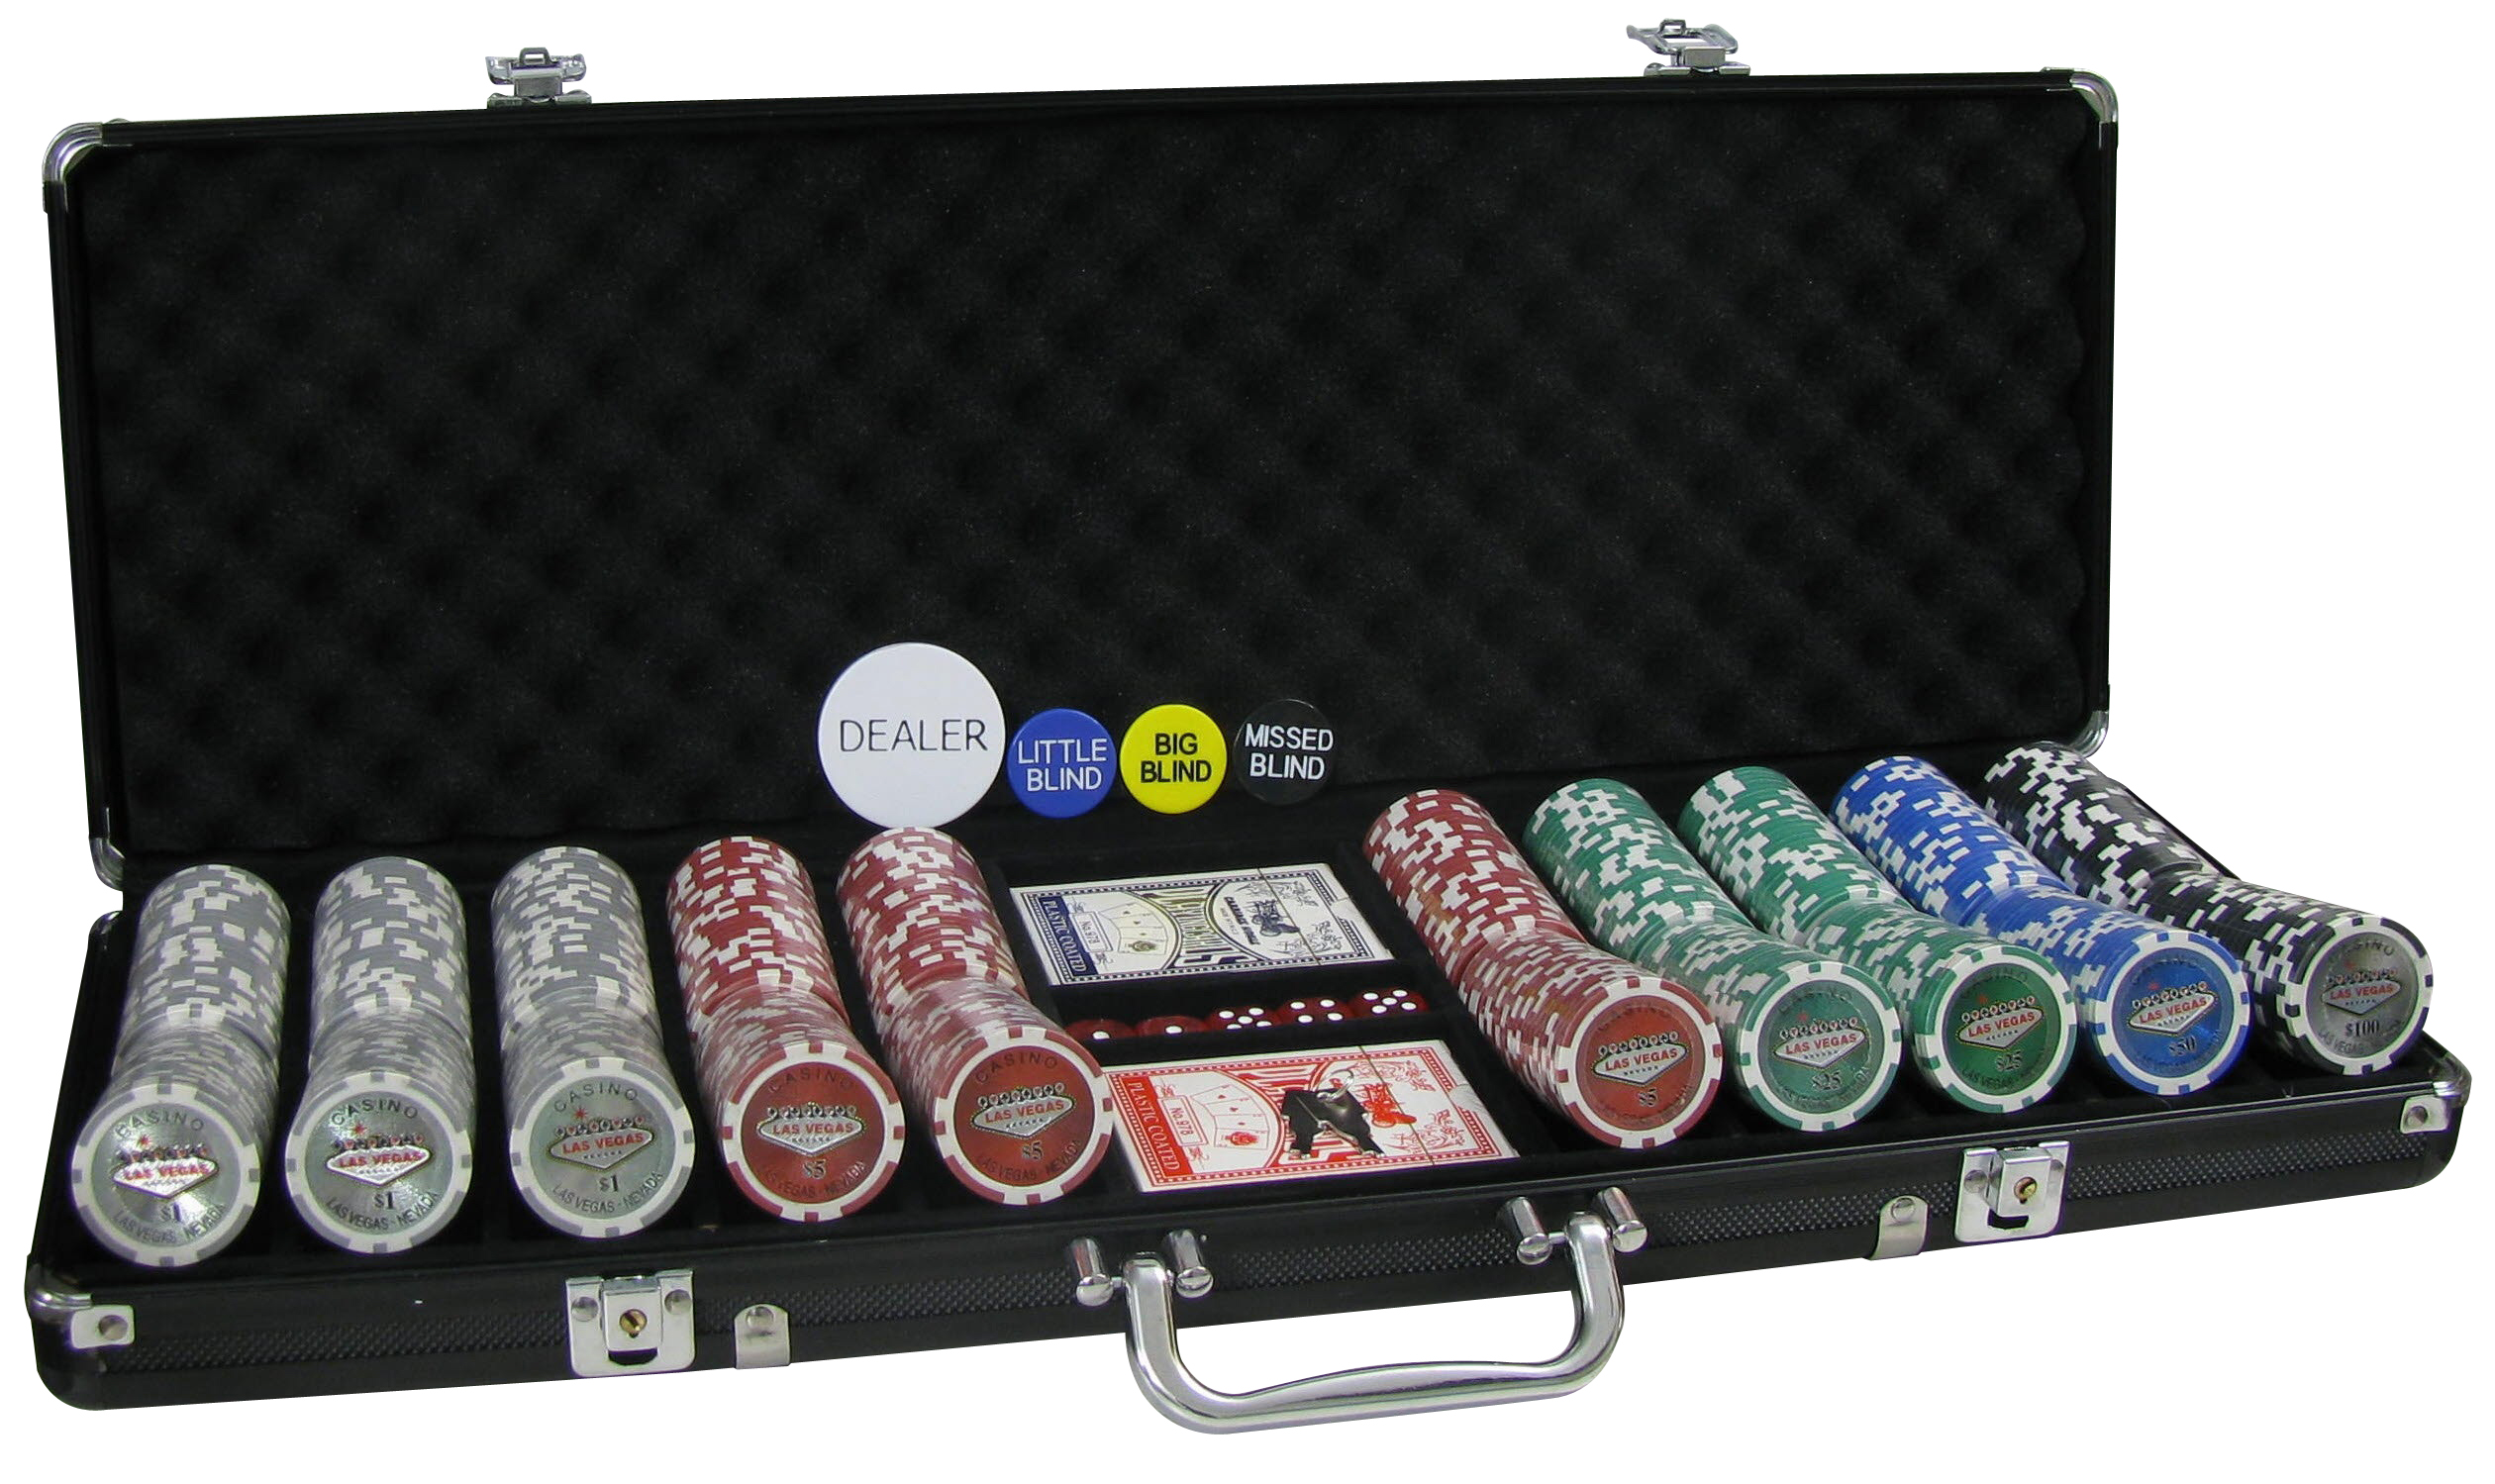 Las vegas poker chips for sale uk